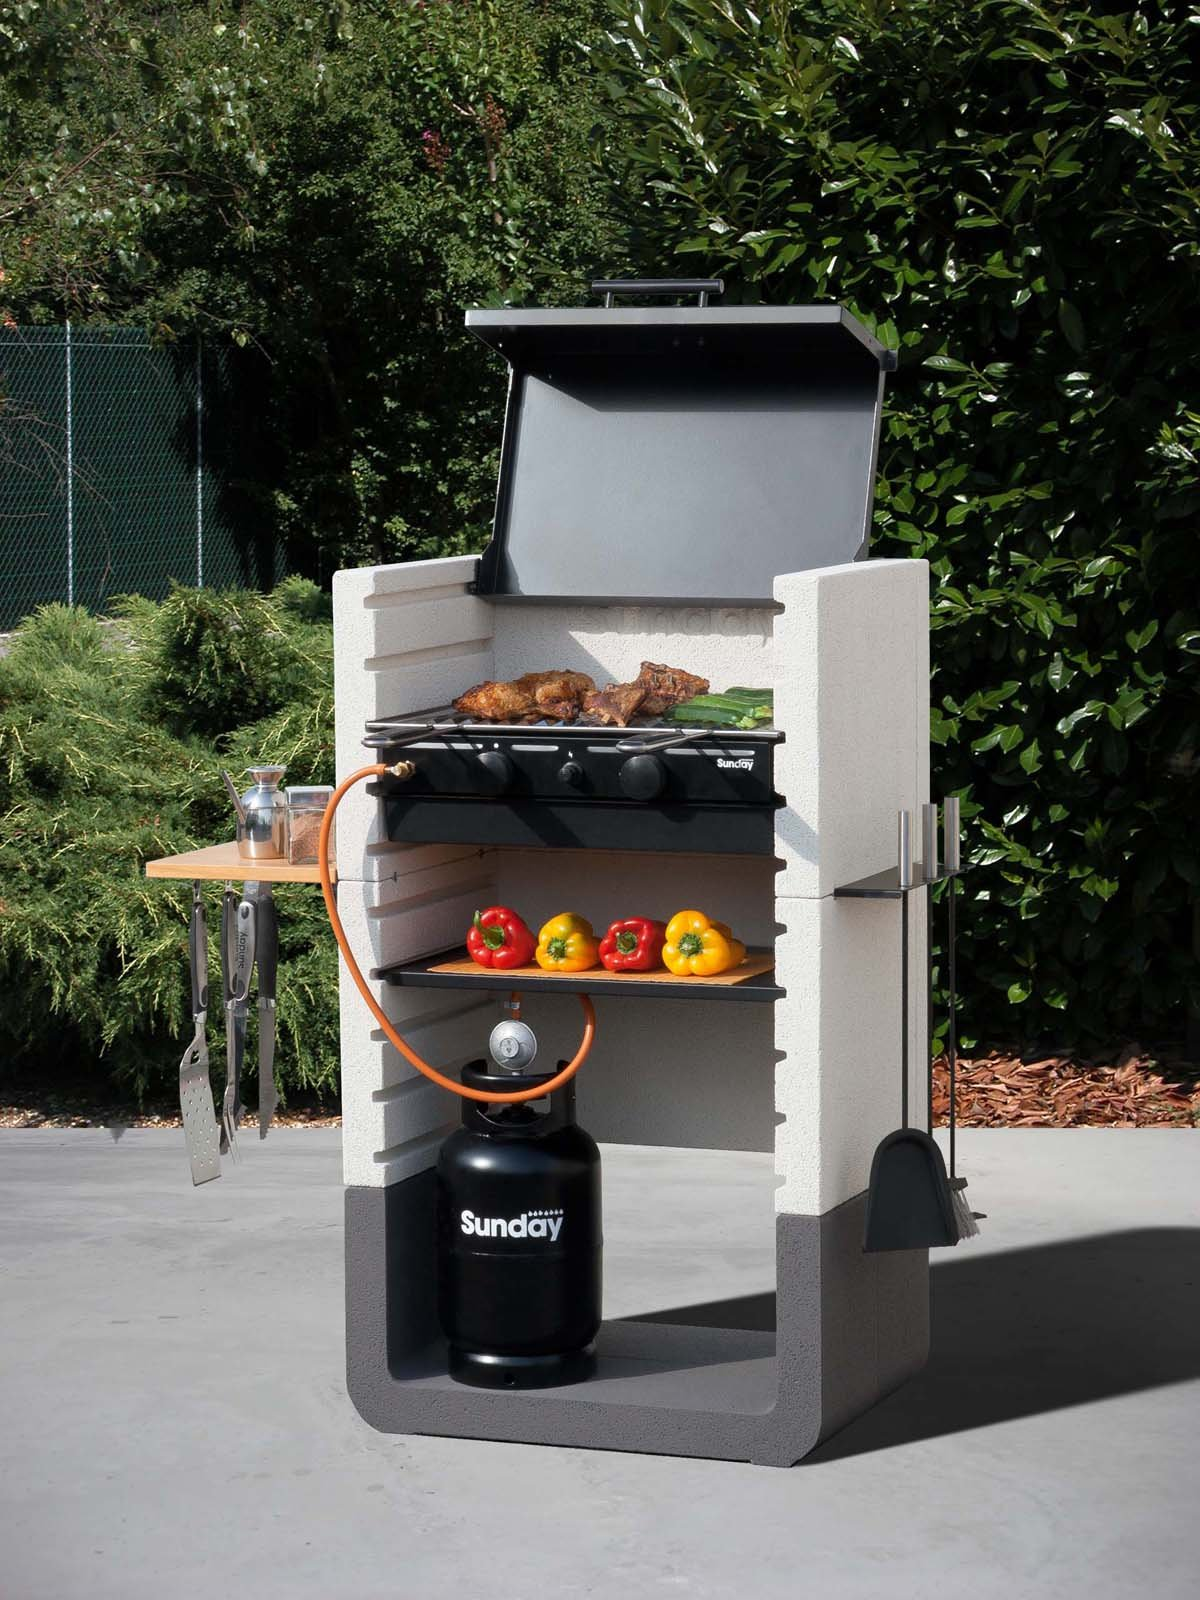 Barbecue con tante forme e accessori cose di casa - Barbecue in casa ...